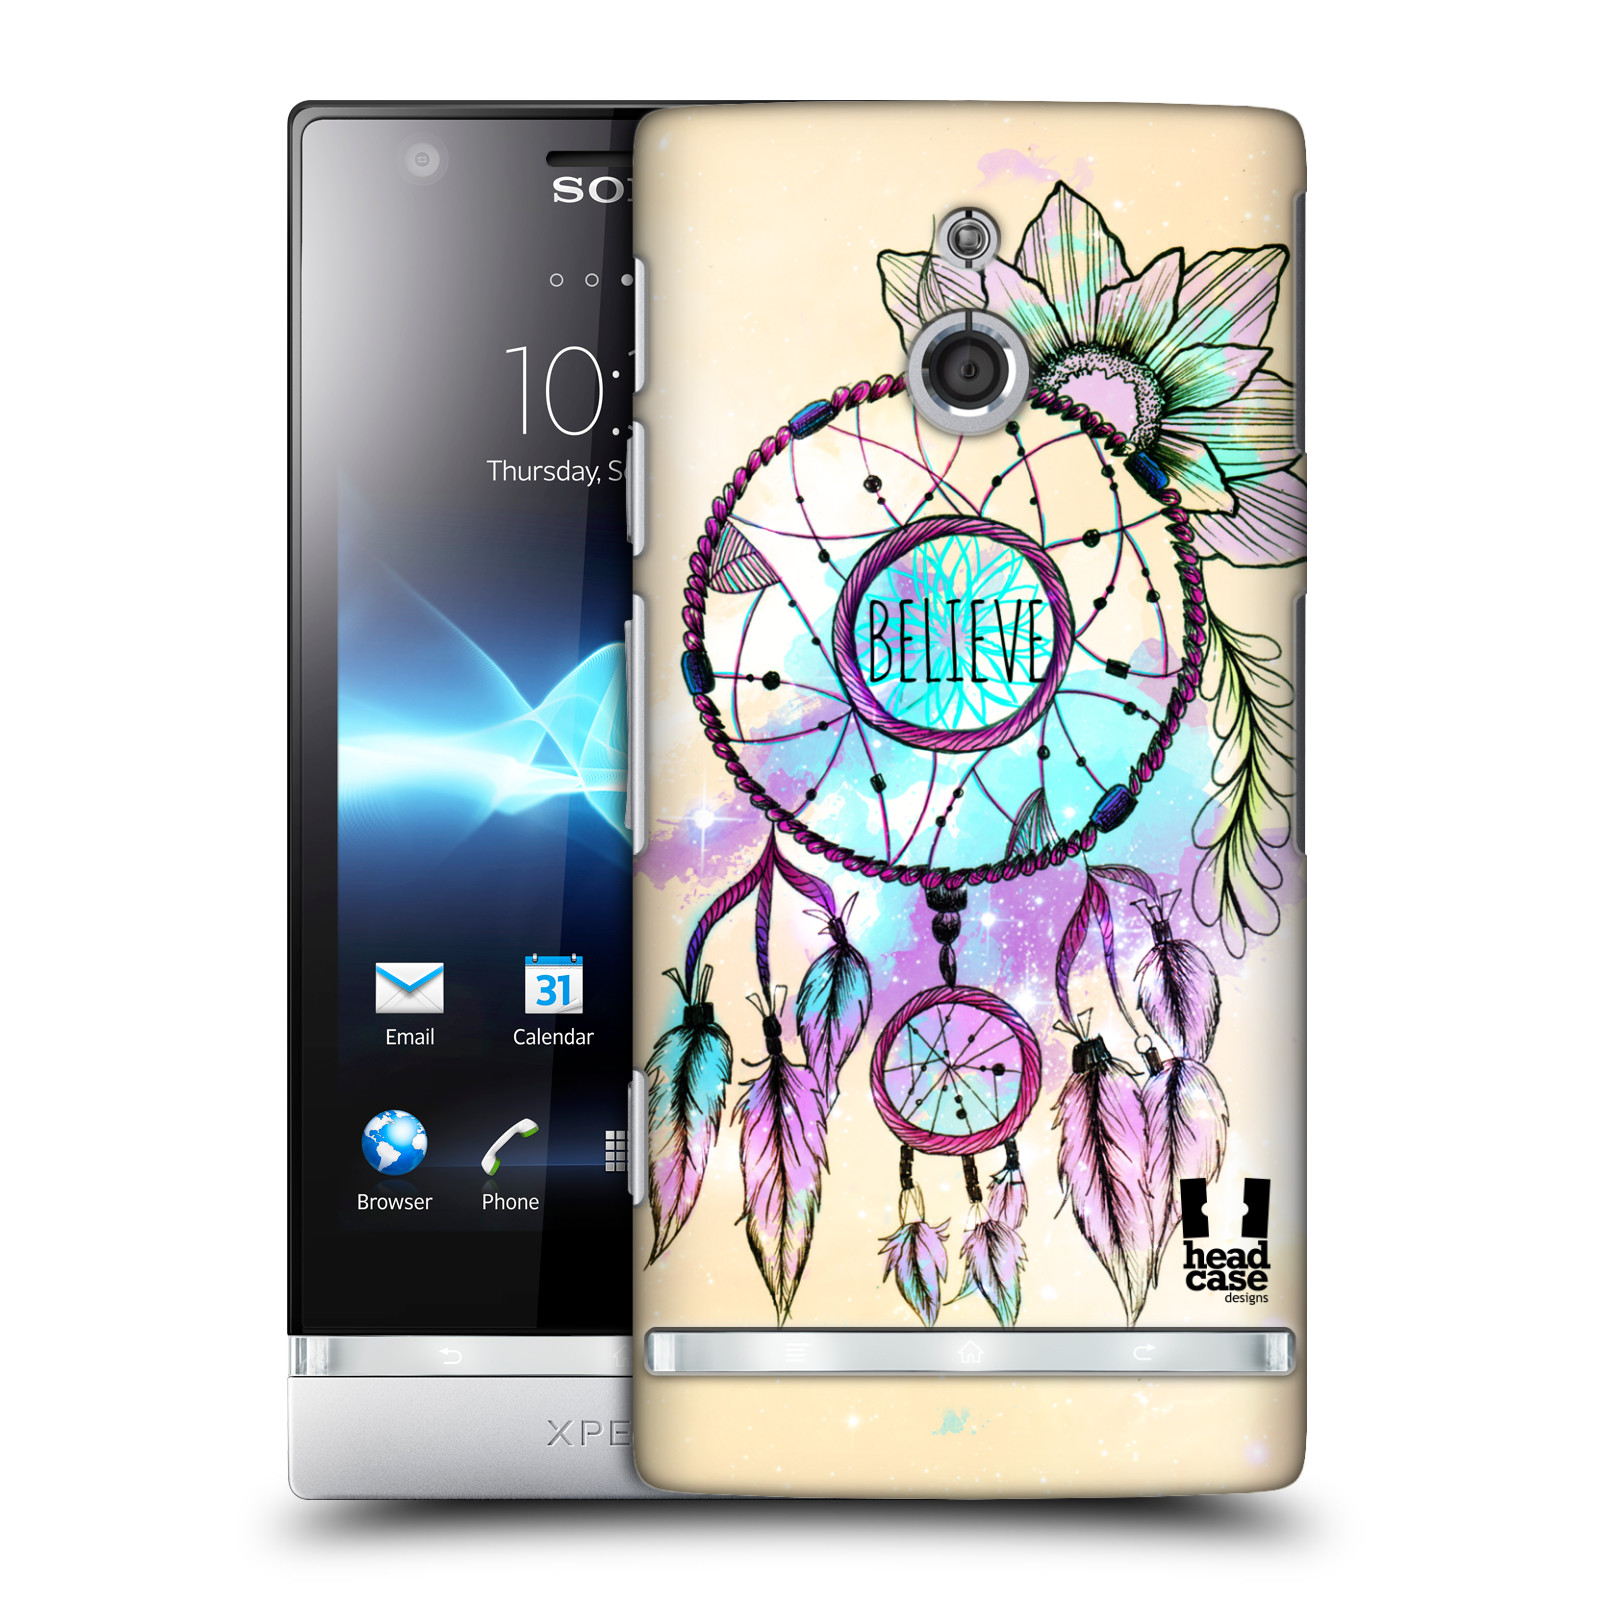 HEAD CASE DESIGNS TREND MIX CASE COVER FOR SONY XPERIA P LT22i